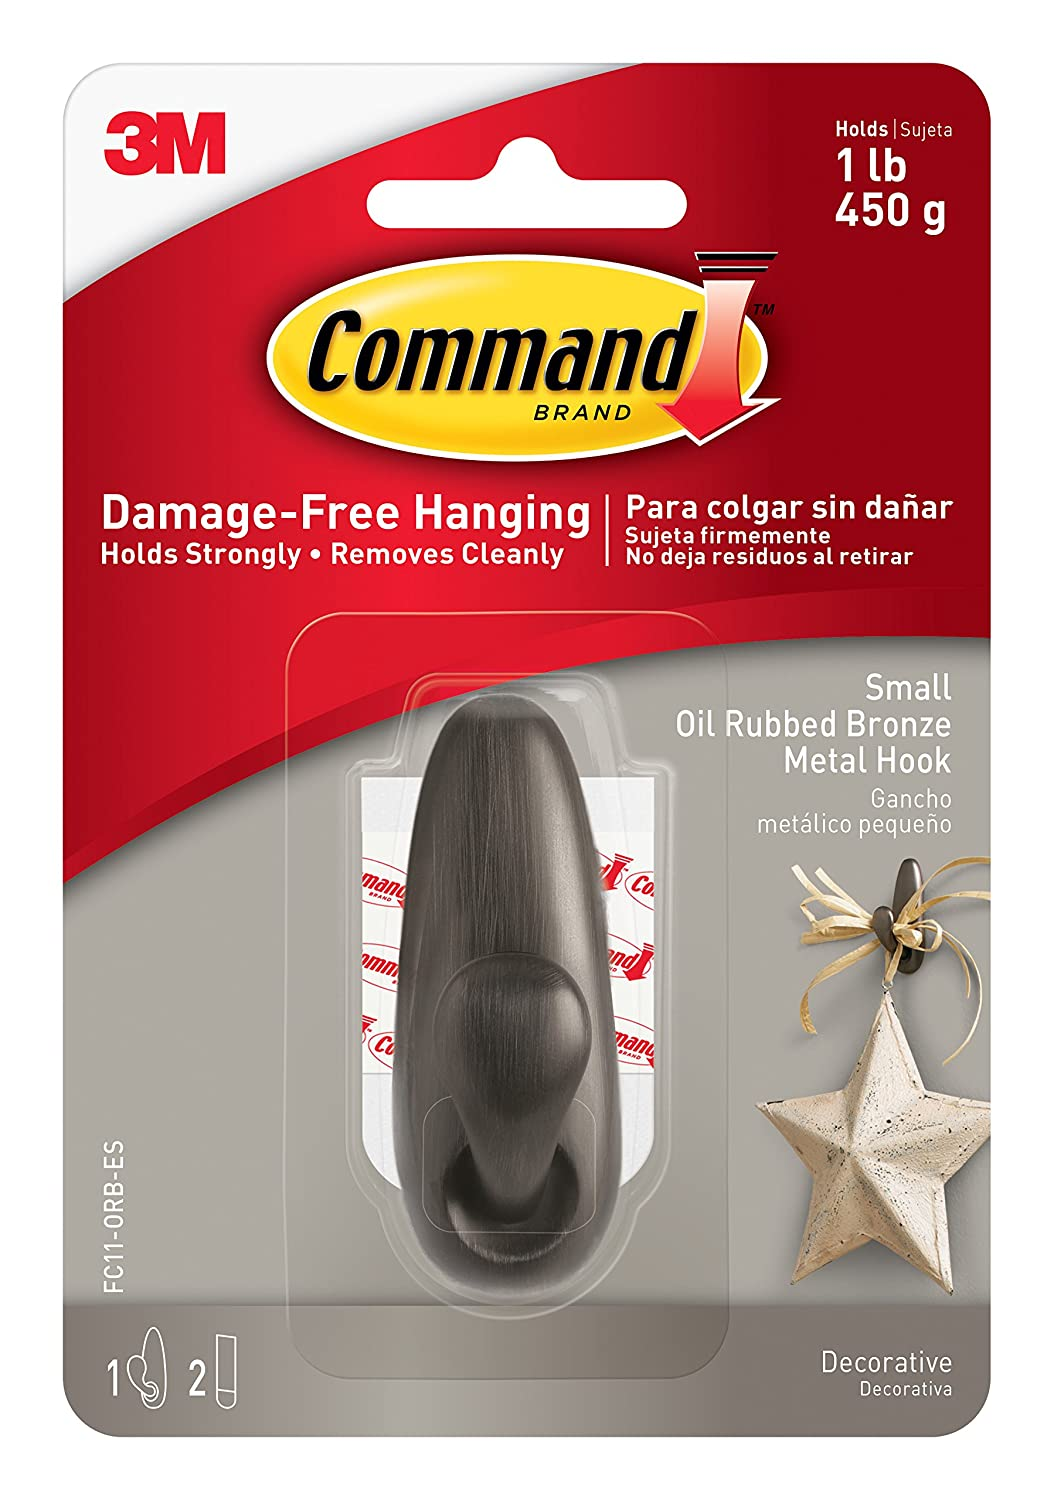 Command Forever Classic Metal Hook, Small, Oil Rubbed Bronze, 1-Hook (FC11-ORB) 3M Command